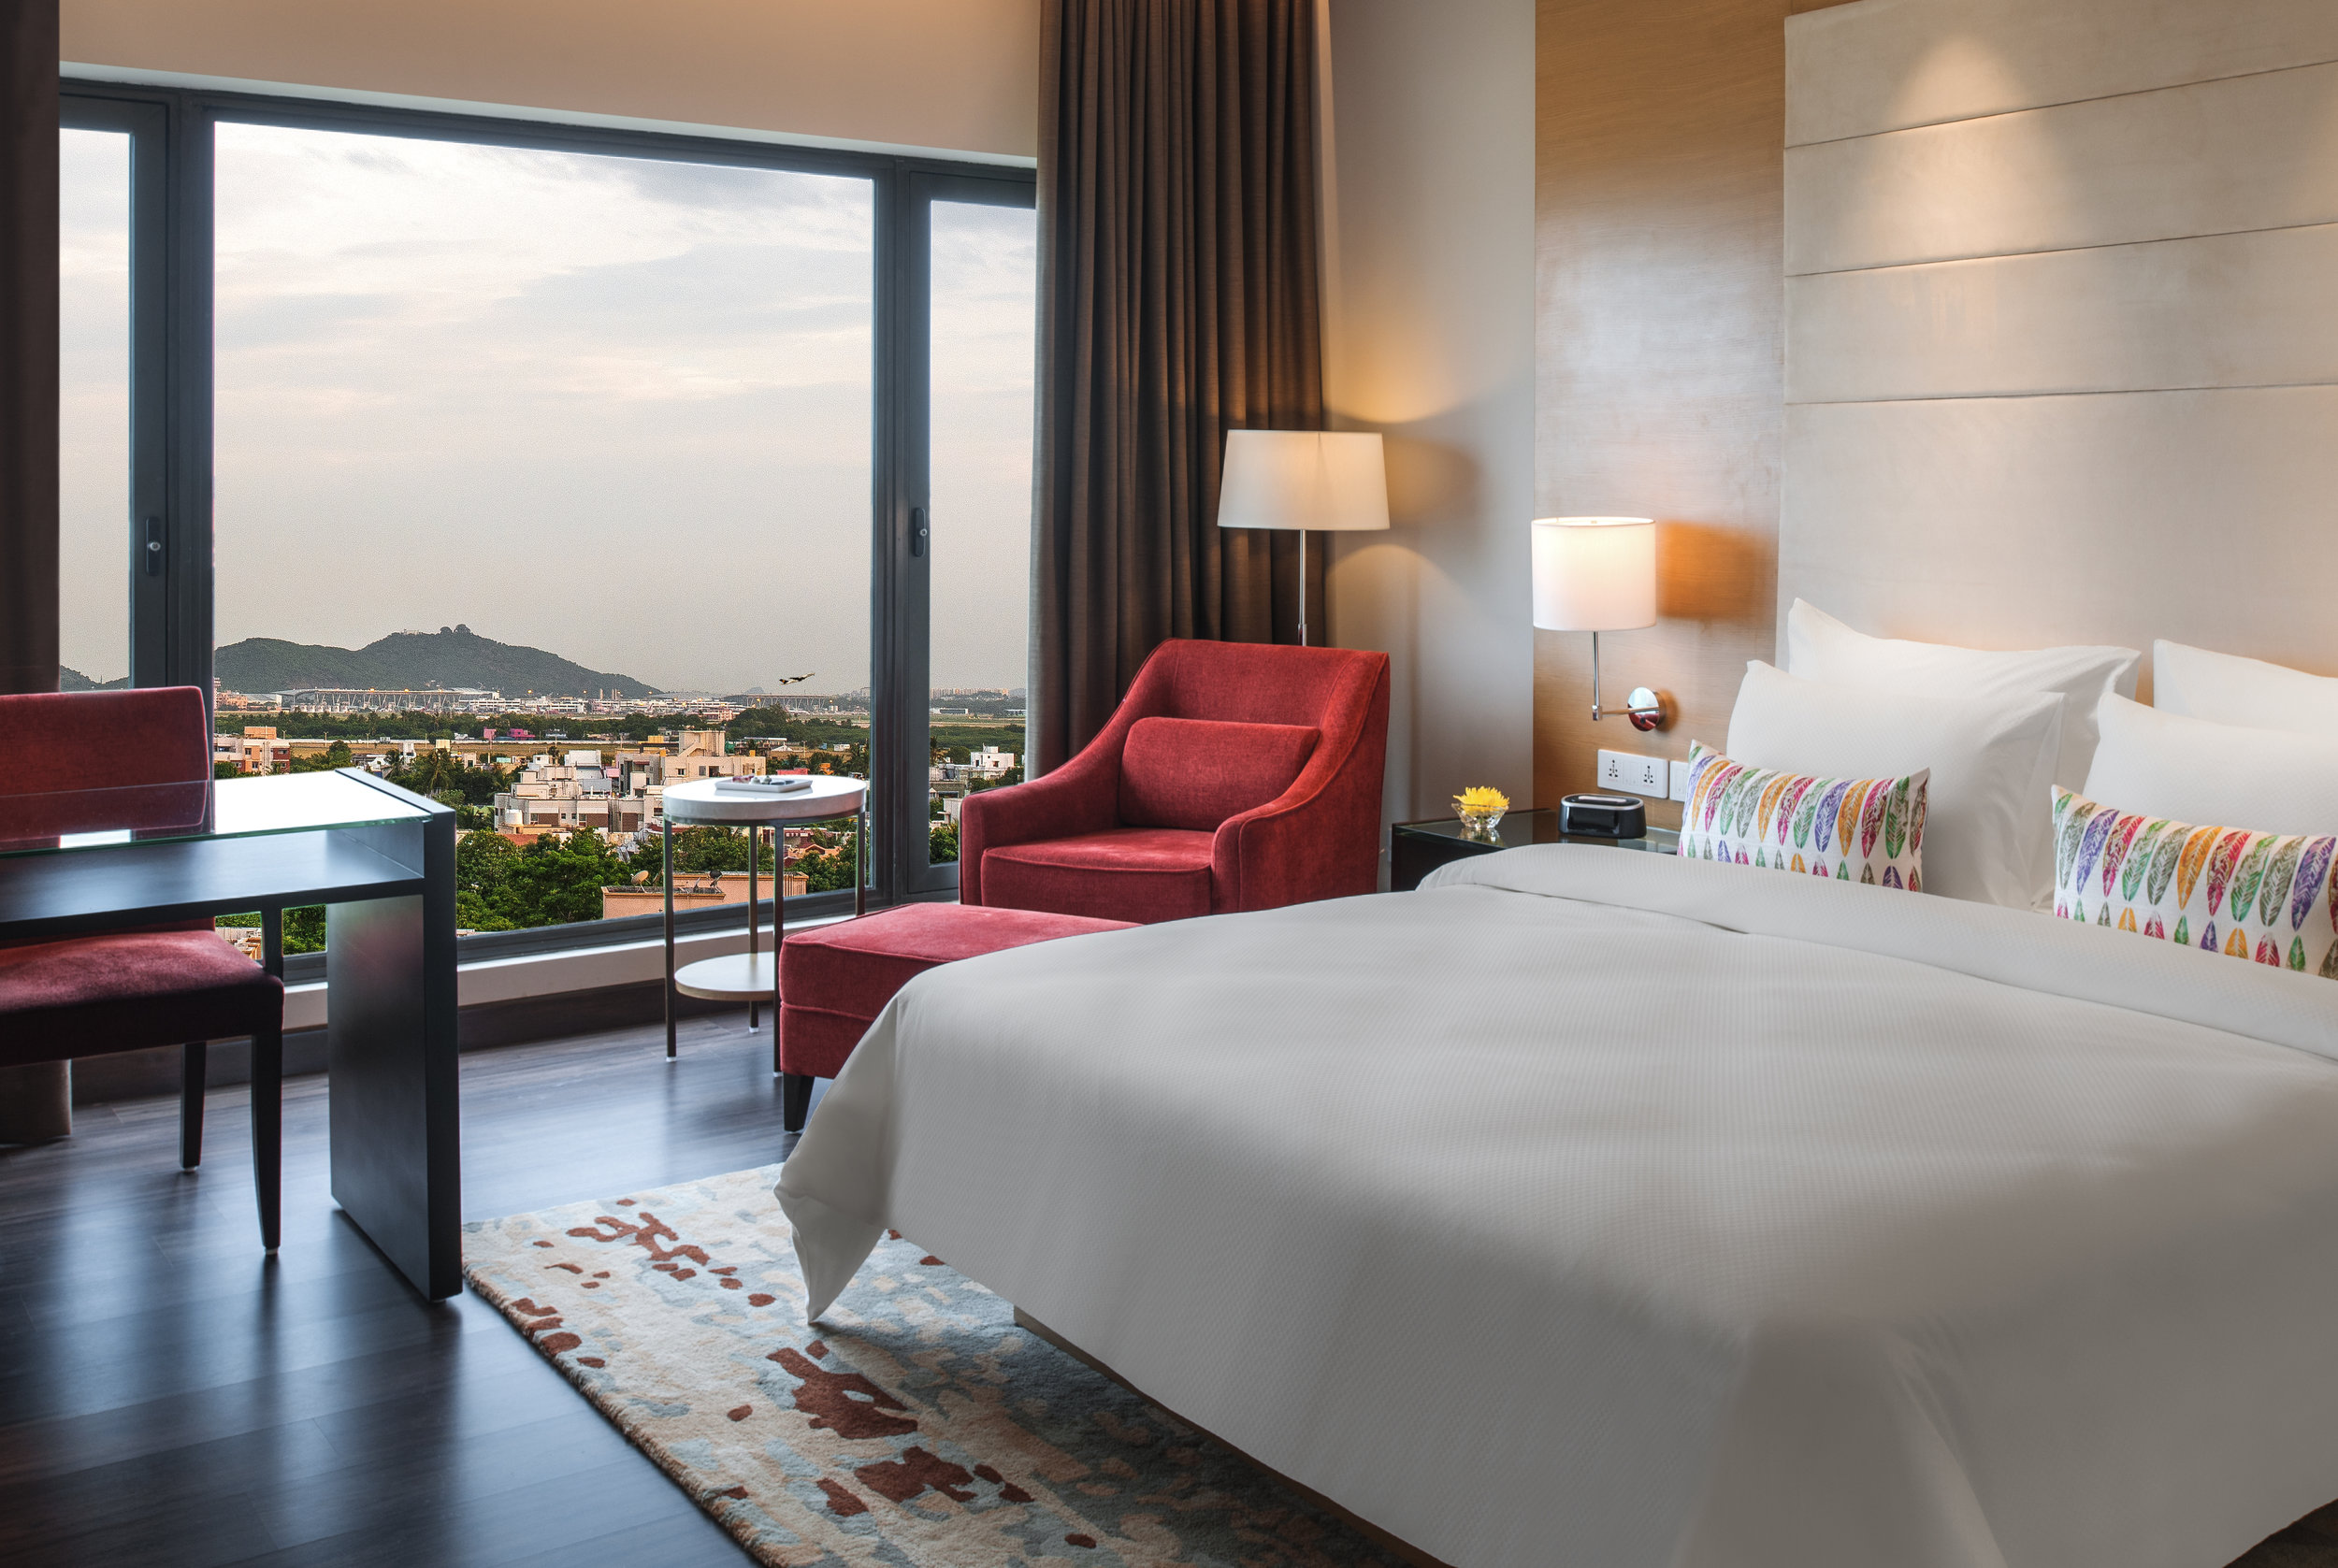 Cobico_Feathers Chennai_Premium room with Airport view.jpg